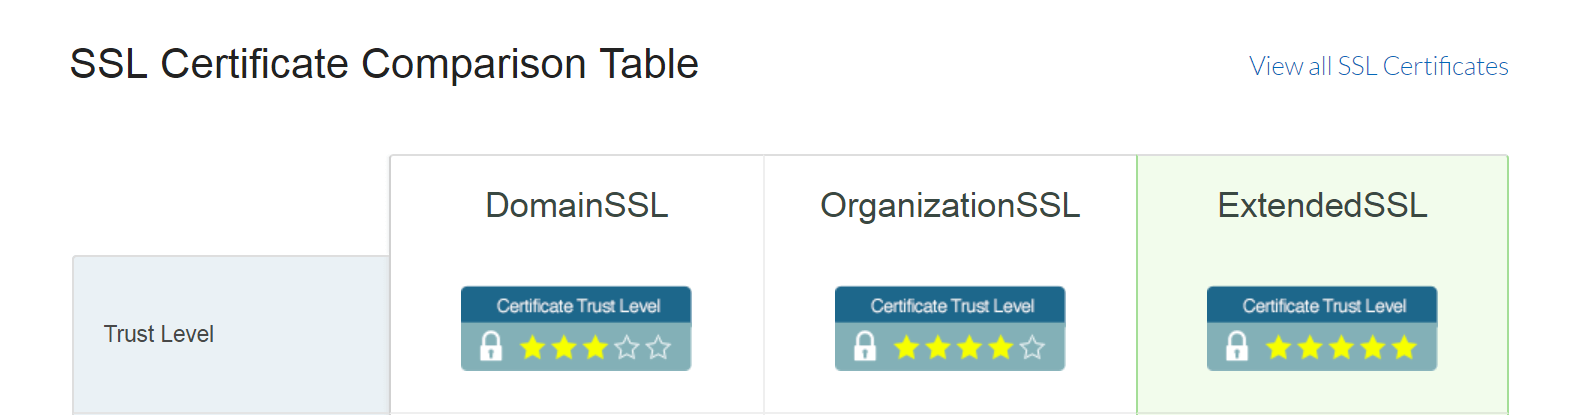 A table comparing the three types of SSL certificates.